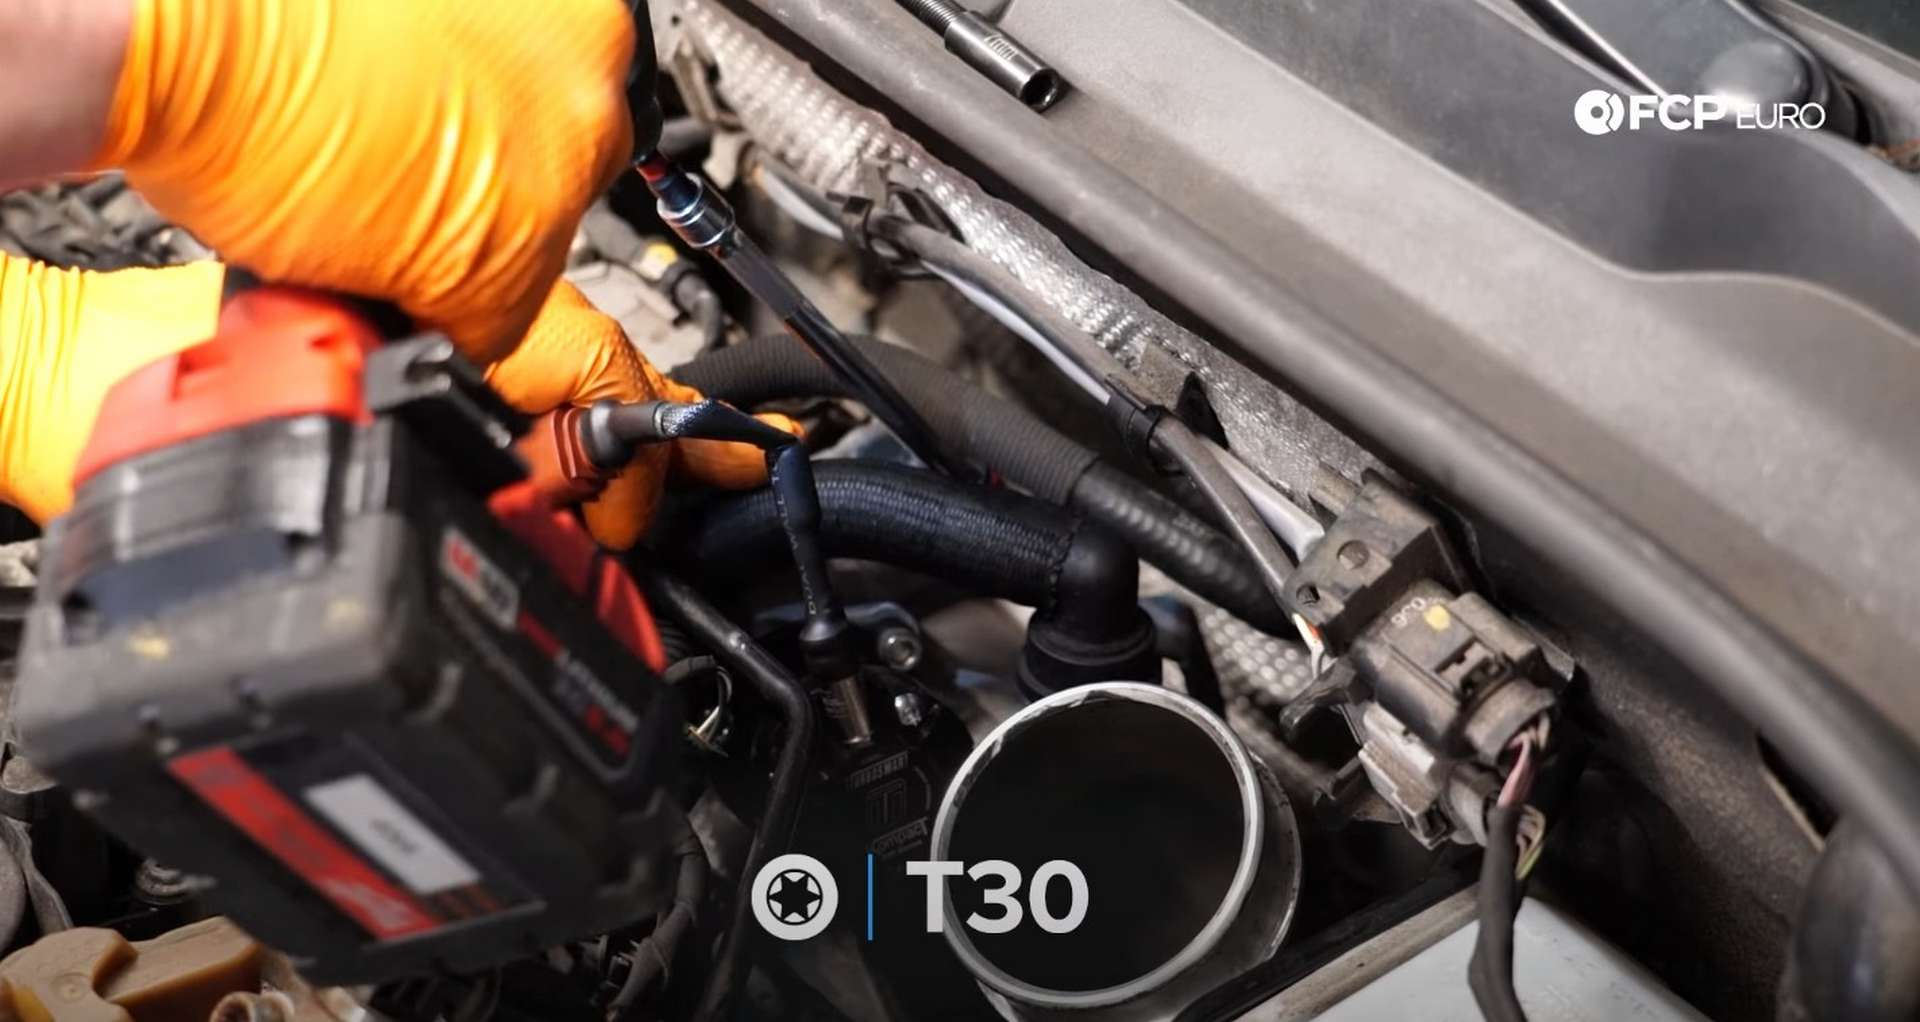 DIY MK7 VW GTI Turbocharger Upgrade removing the pipe's mounting bolt